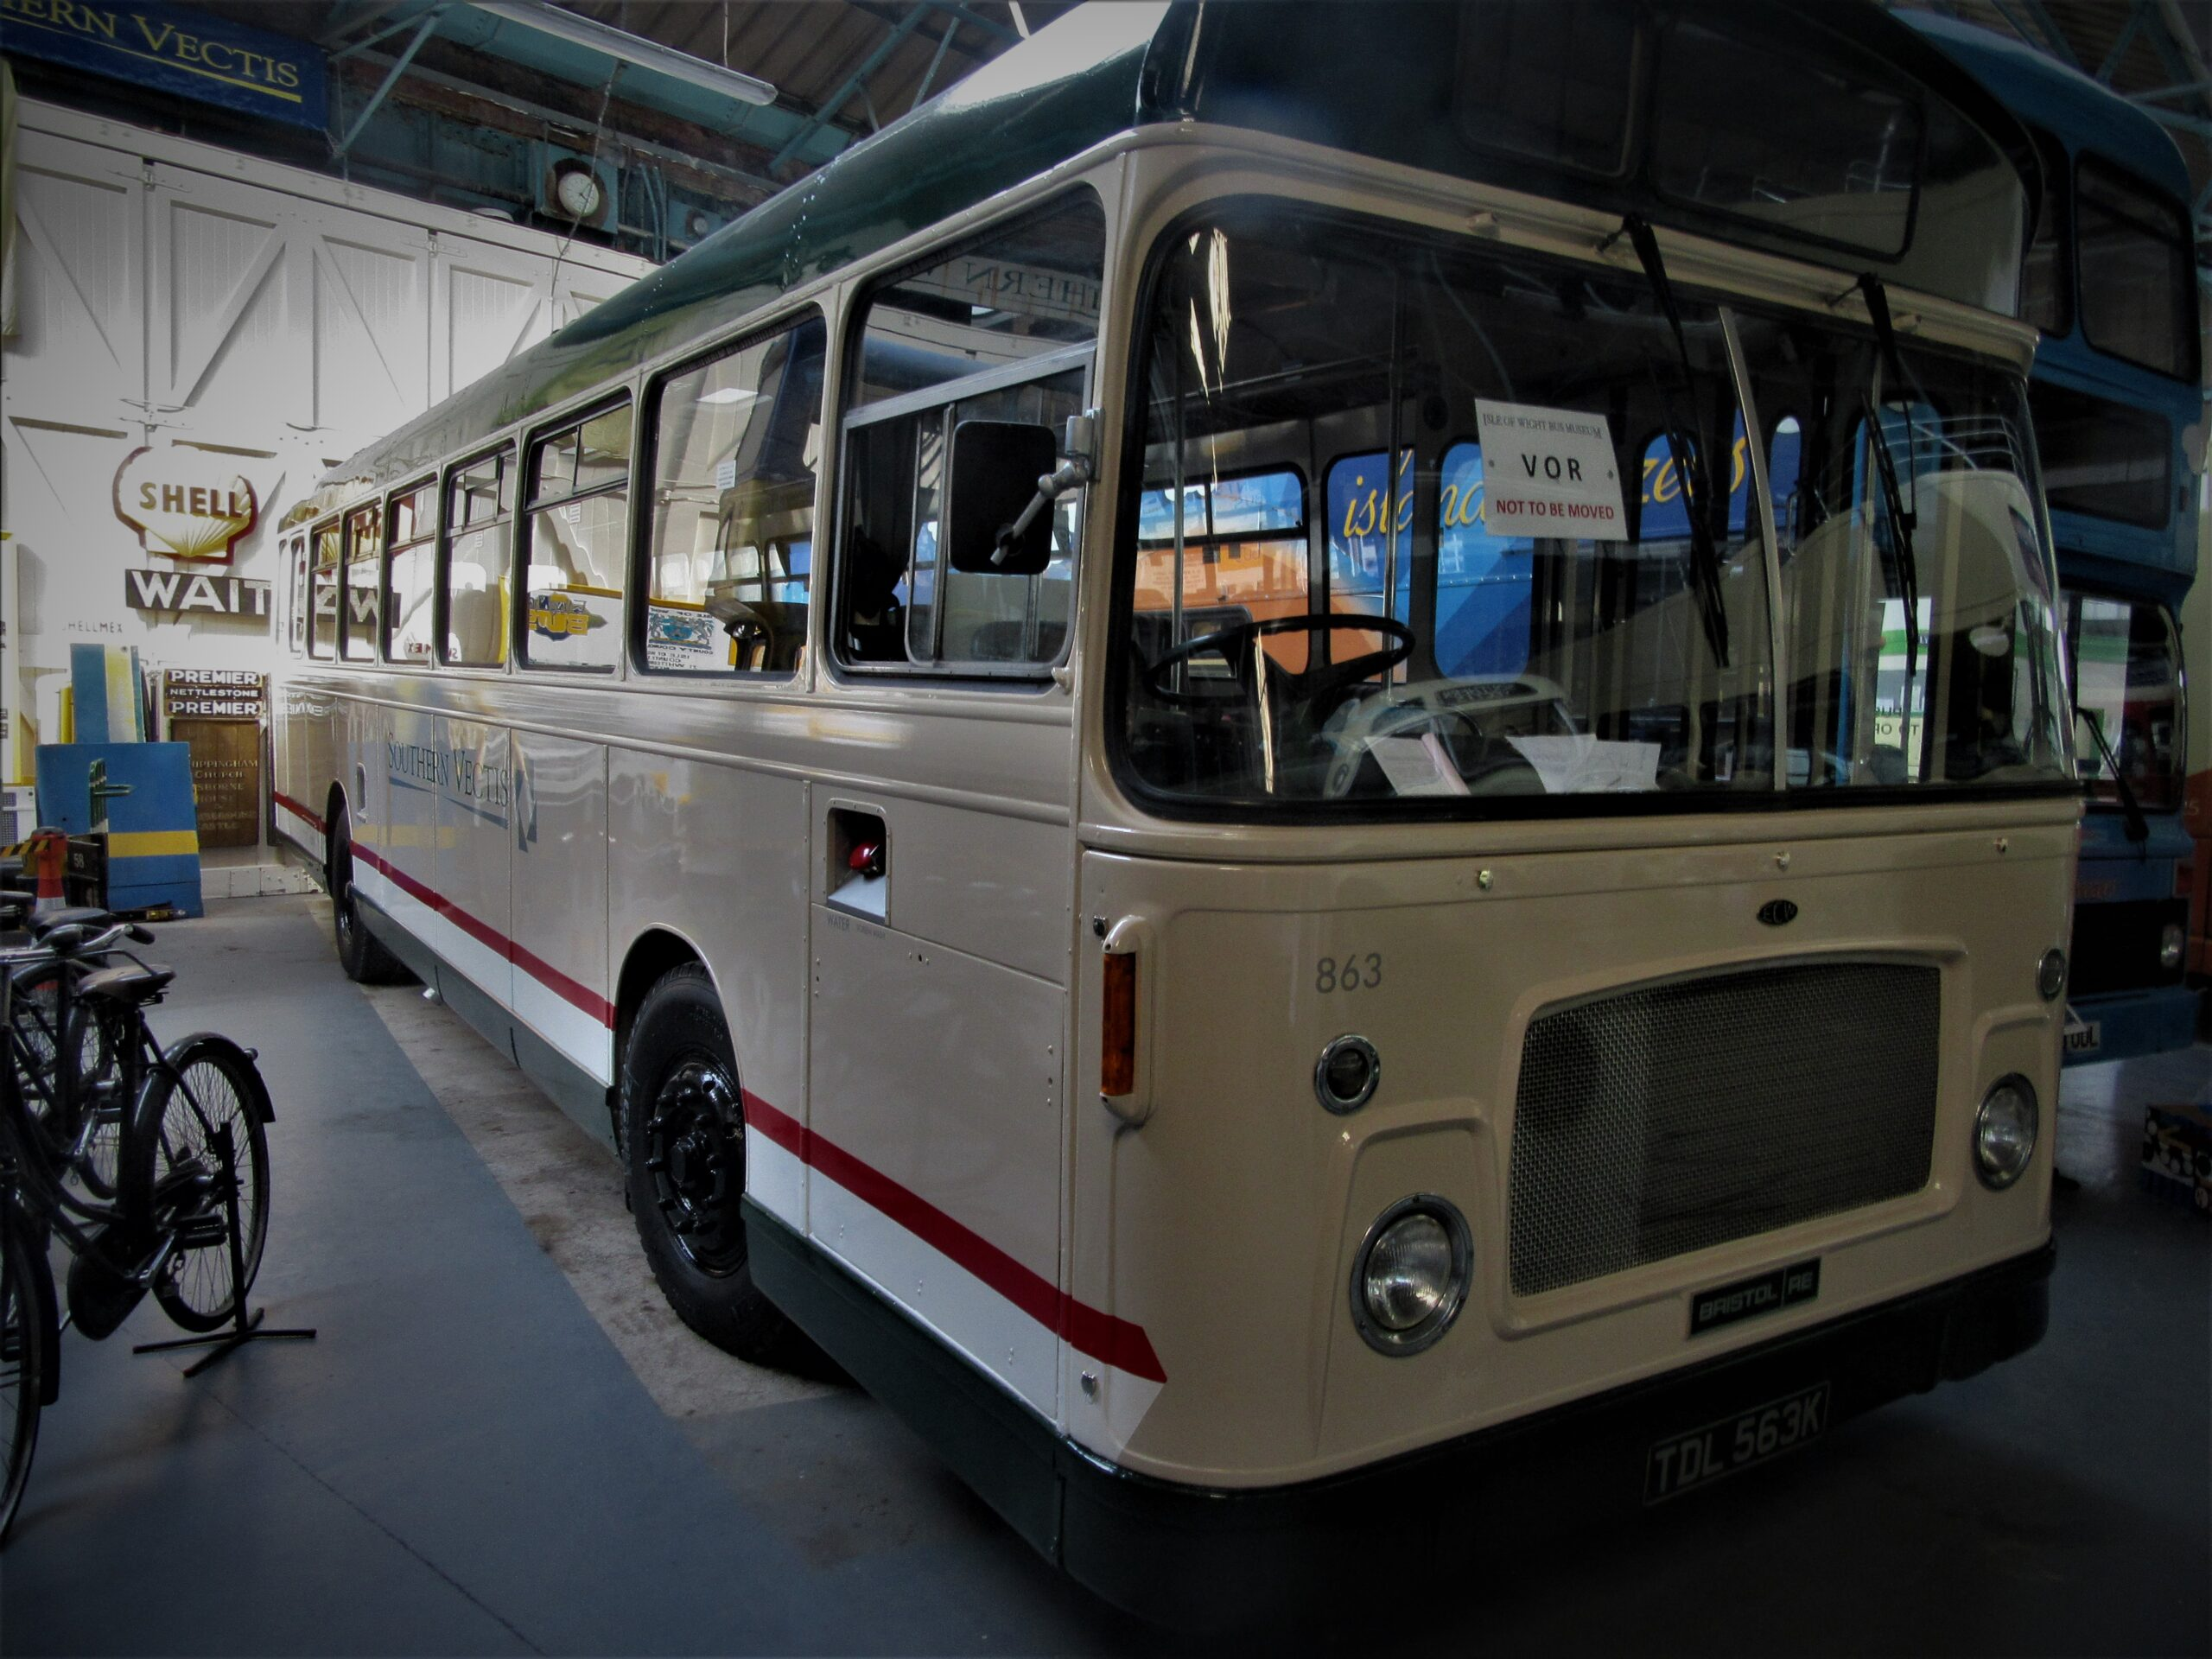 2018 0615 The Bus Garage scaled